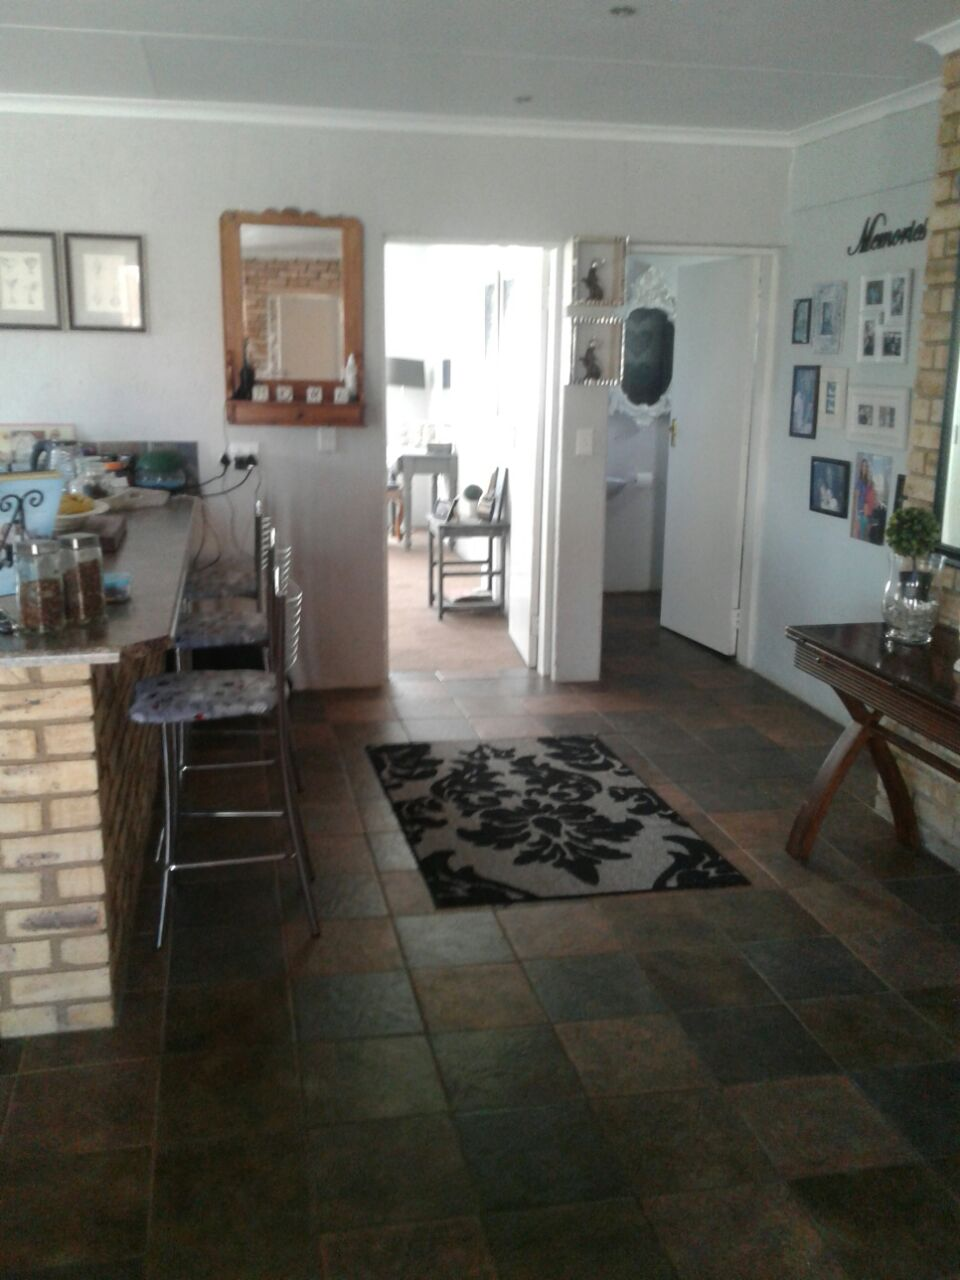 Krugersdorp. Very spacious 2 bedroom house to let in Krugersdorp North. Neat. Beautiful. Central.